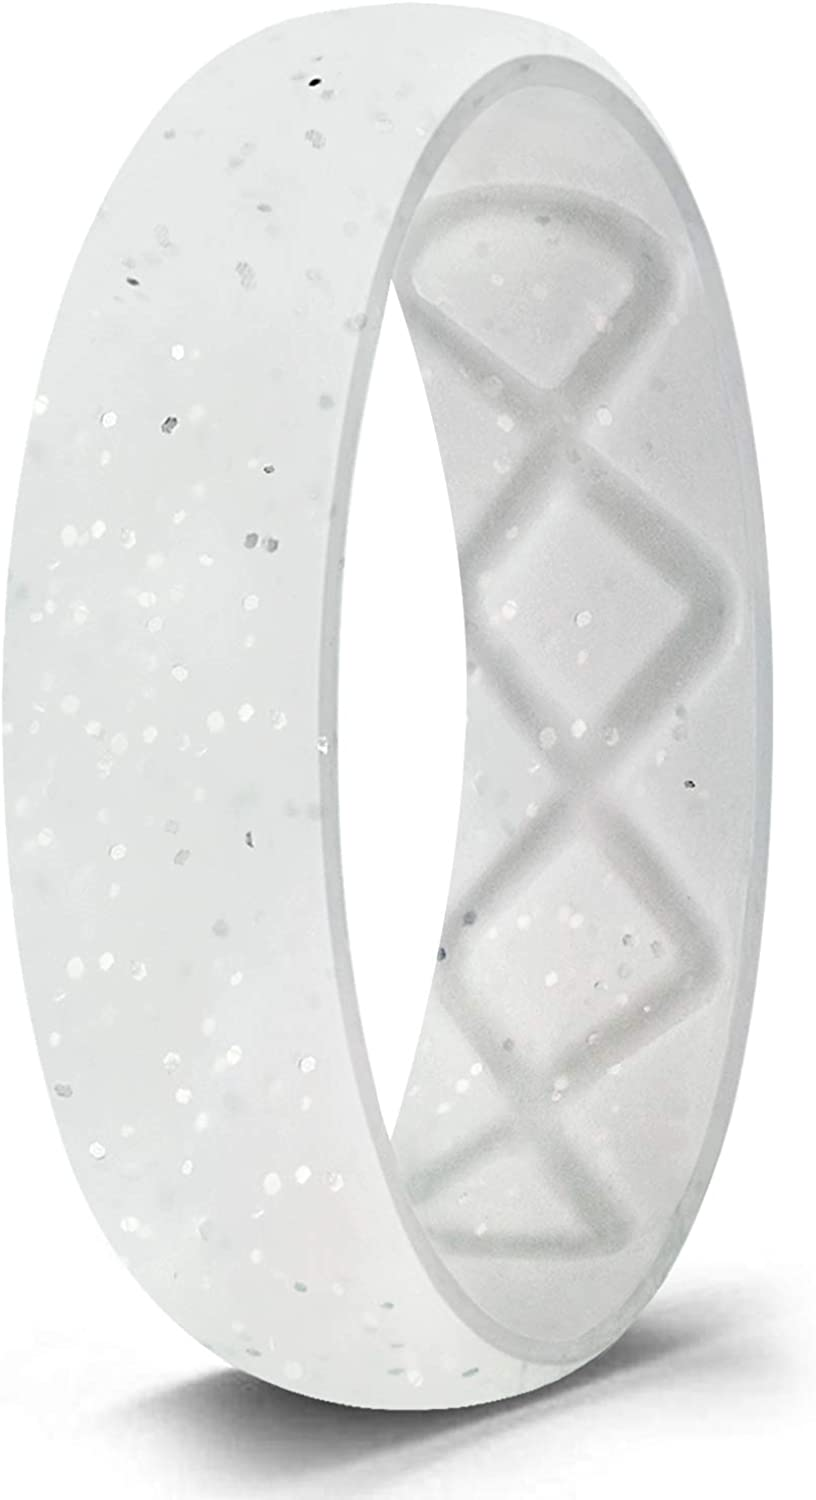 Egnaro Inner Arc Ergonomic Breathable Design, Metallic Silicone Rings for Women, Silicone Wedding Band Women, 6mm Wide - 2mm Thick